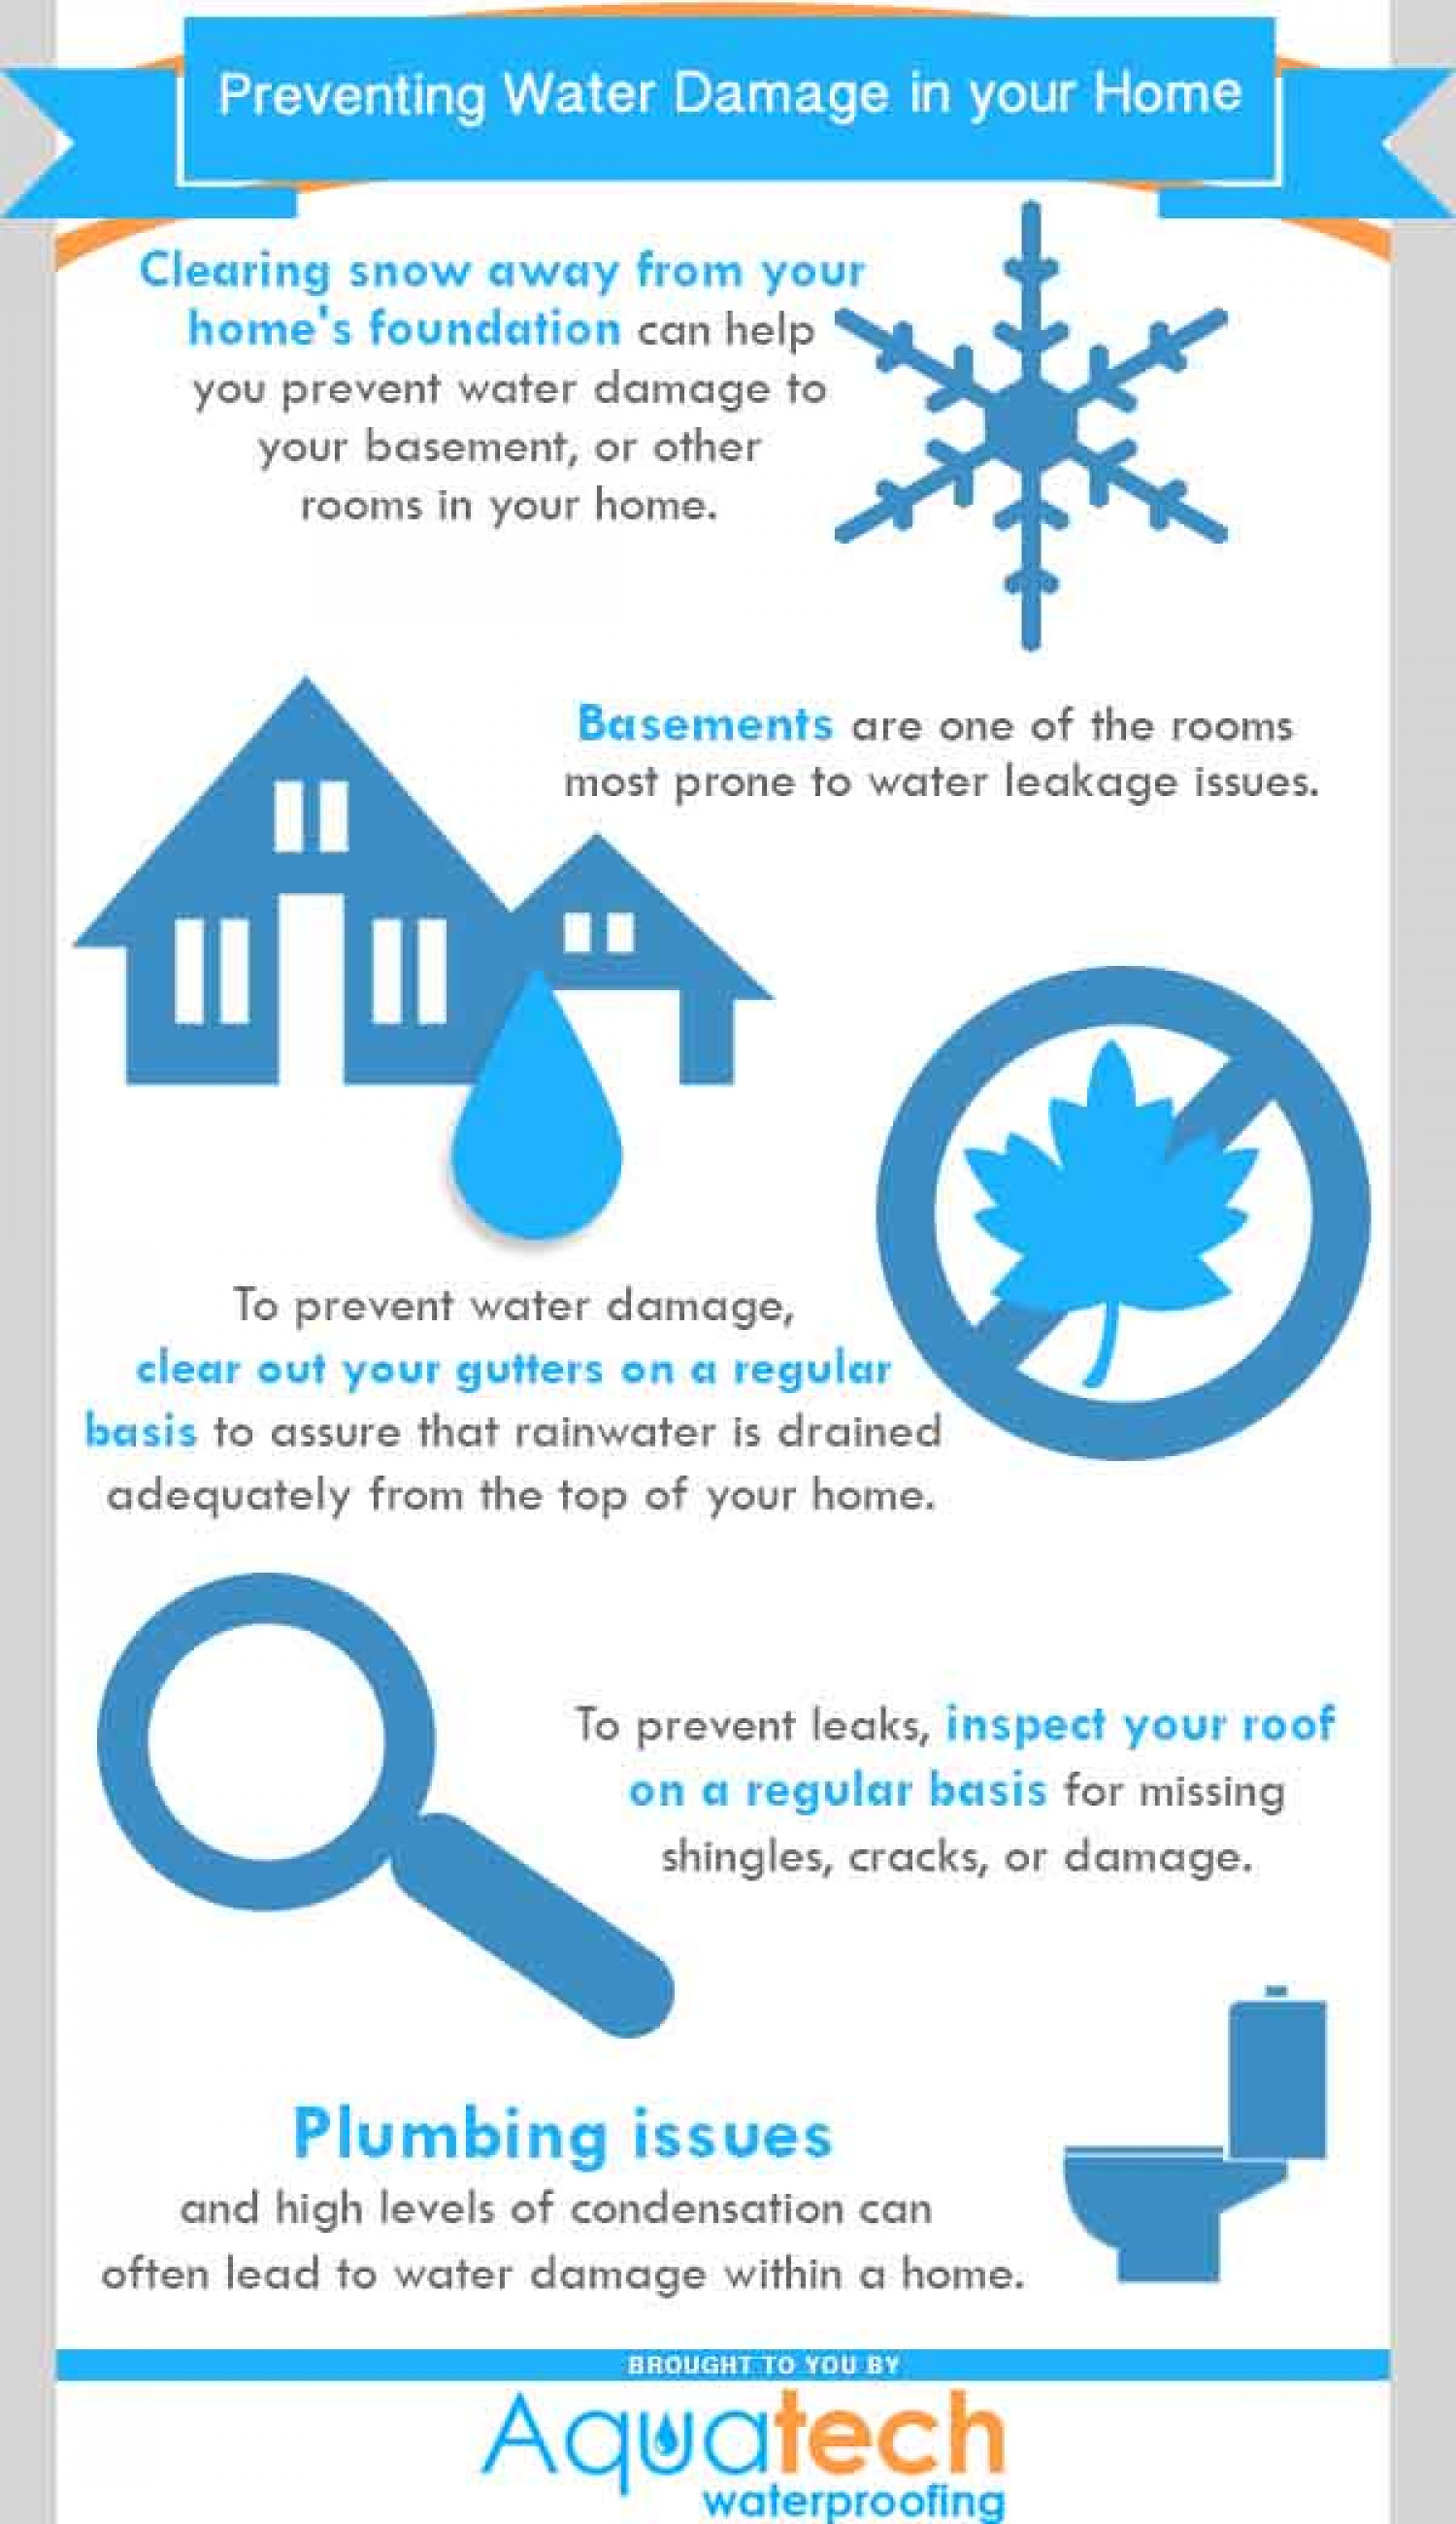 Preventing Water Damage in your Home Infographic